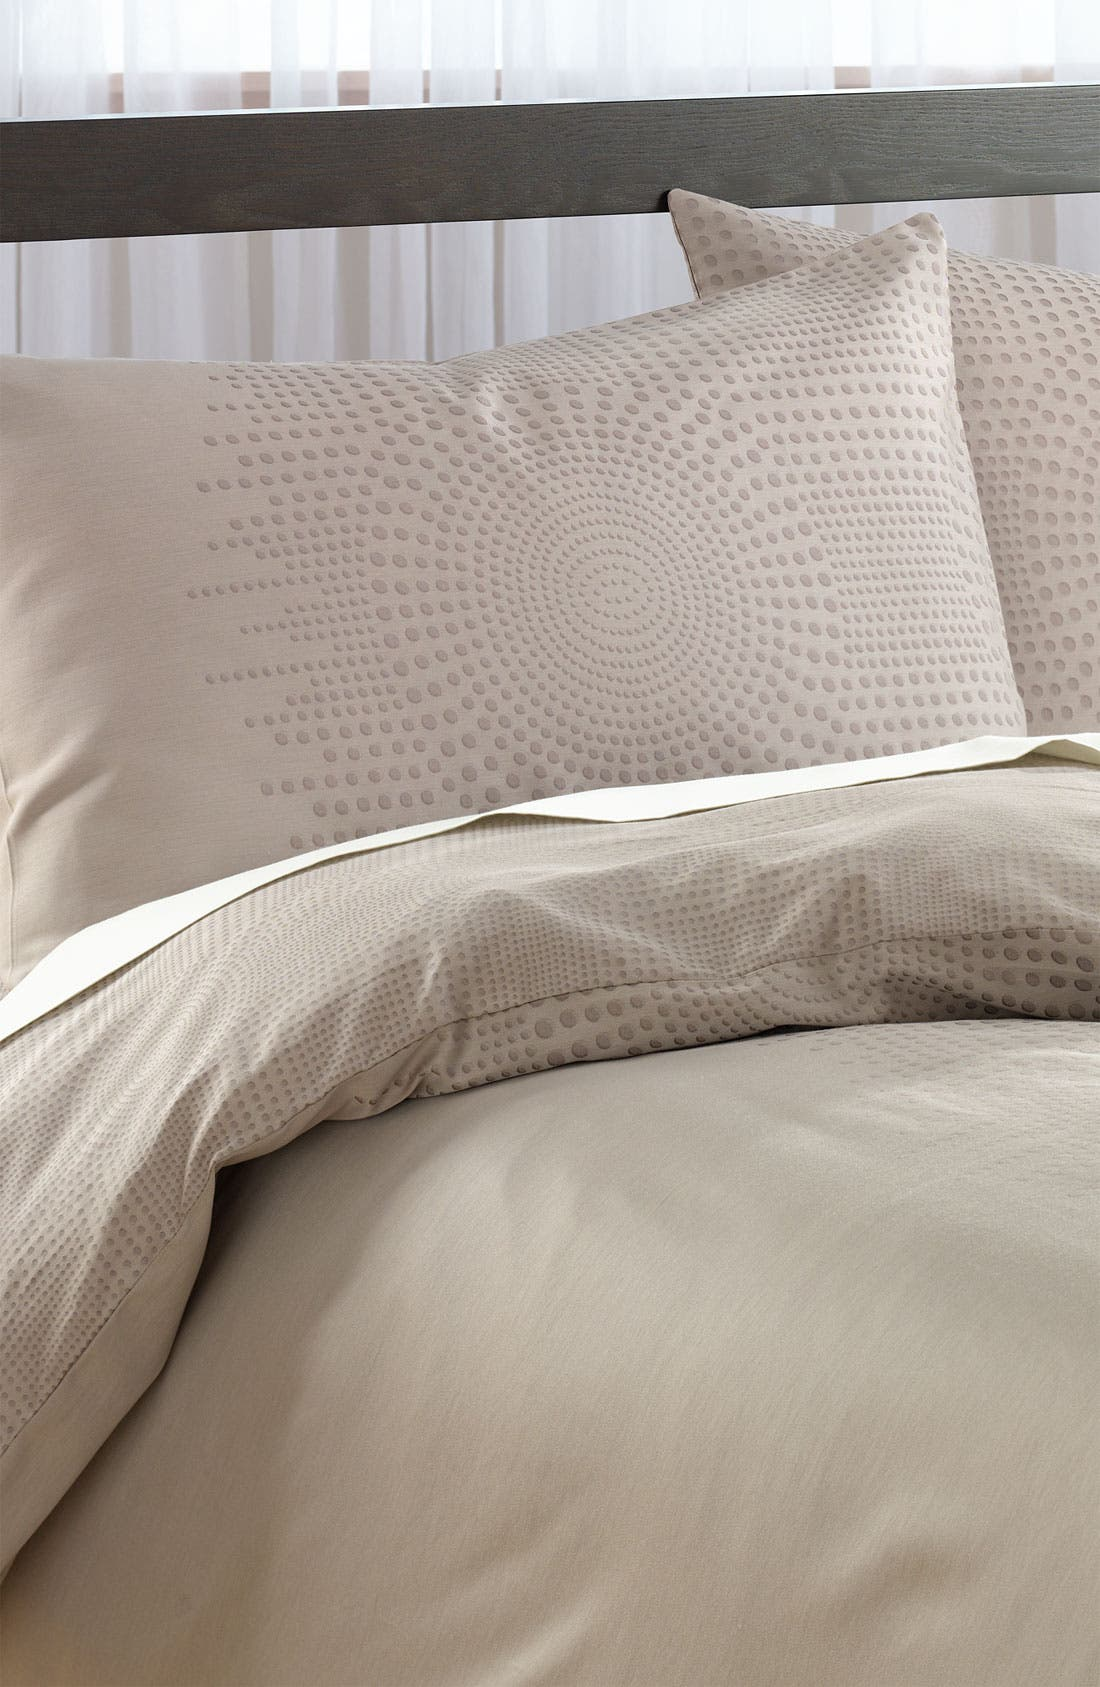 Alternate Image 1 Selected - Nordstrom at Home 'Raindrops' Jacquard Pillow Sham